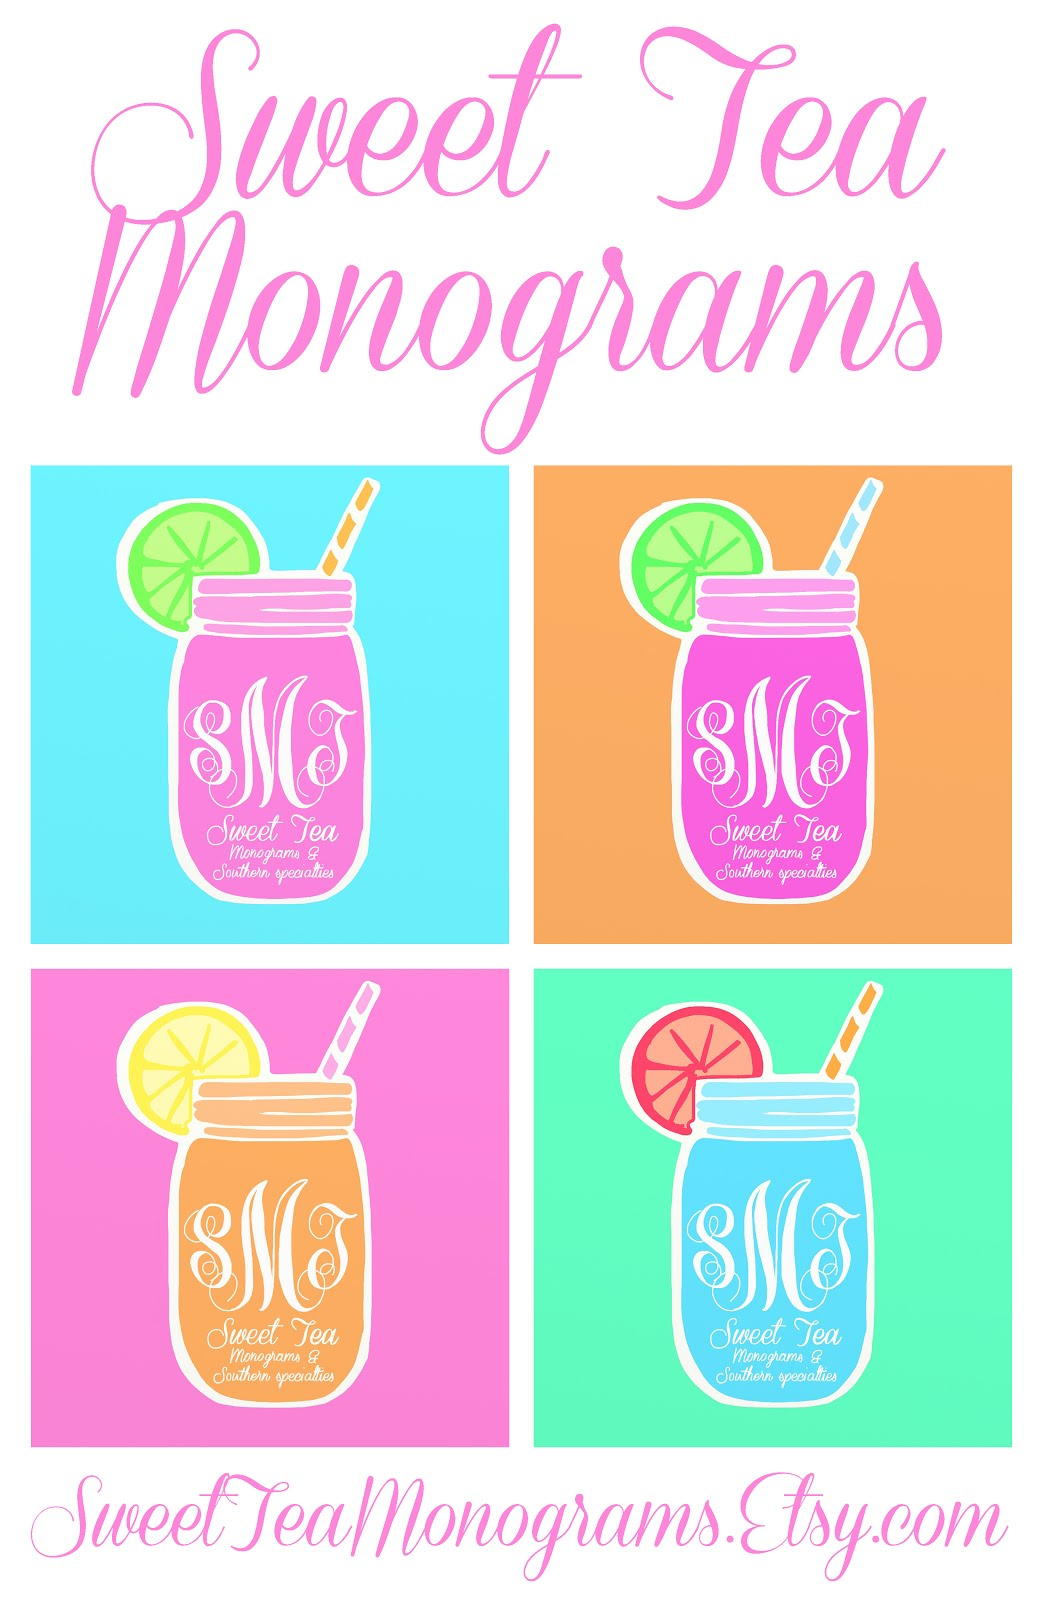 Sweet Tea Monograms